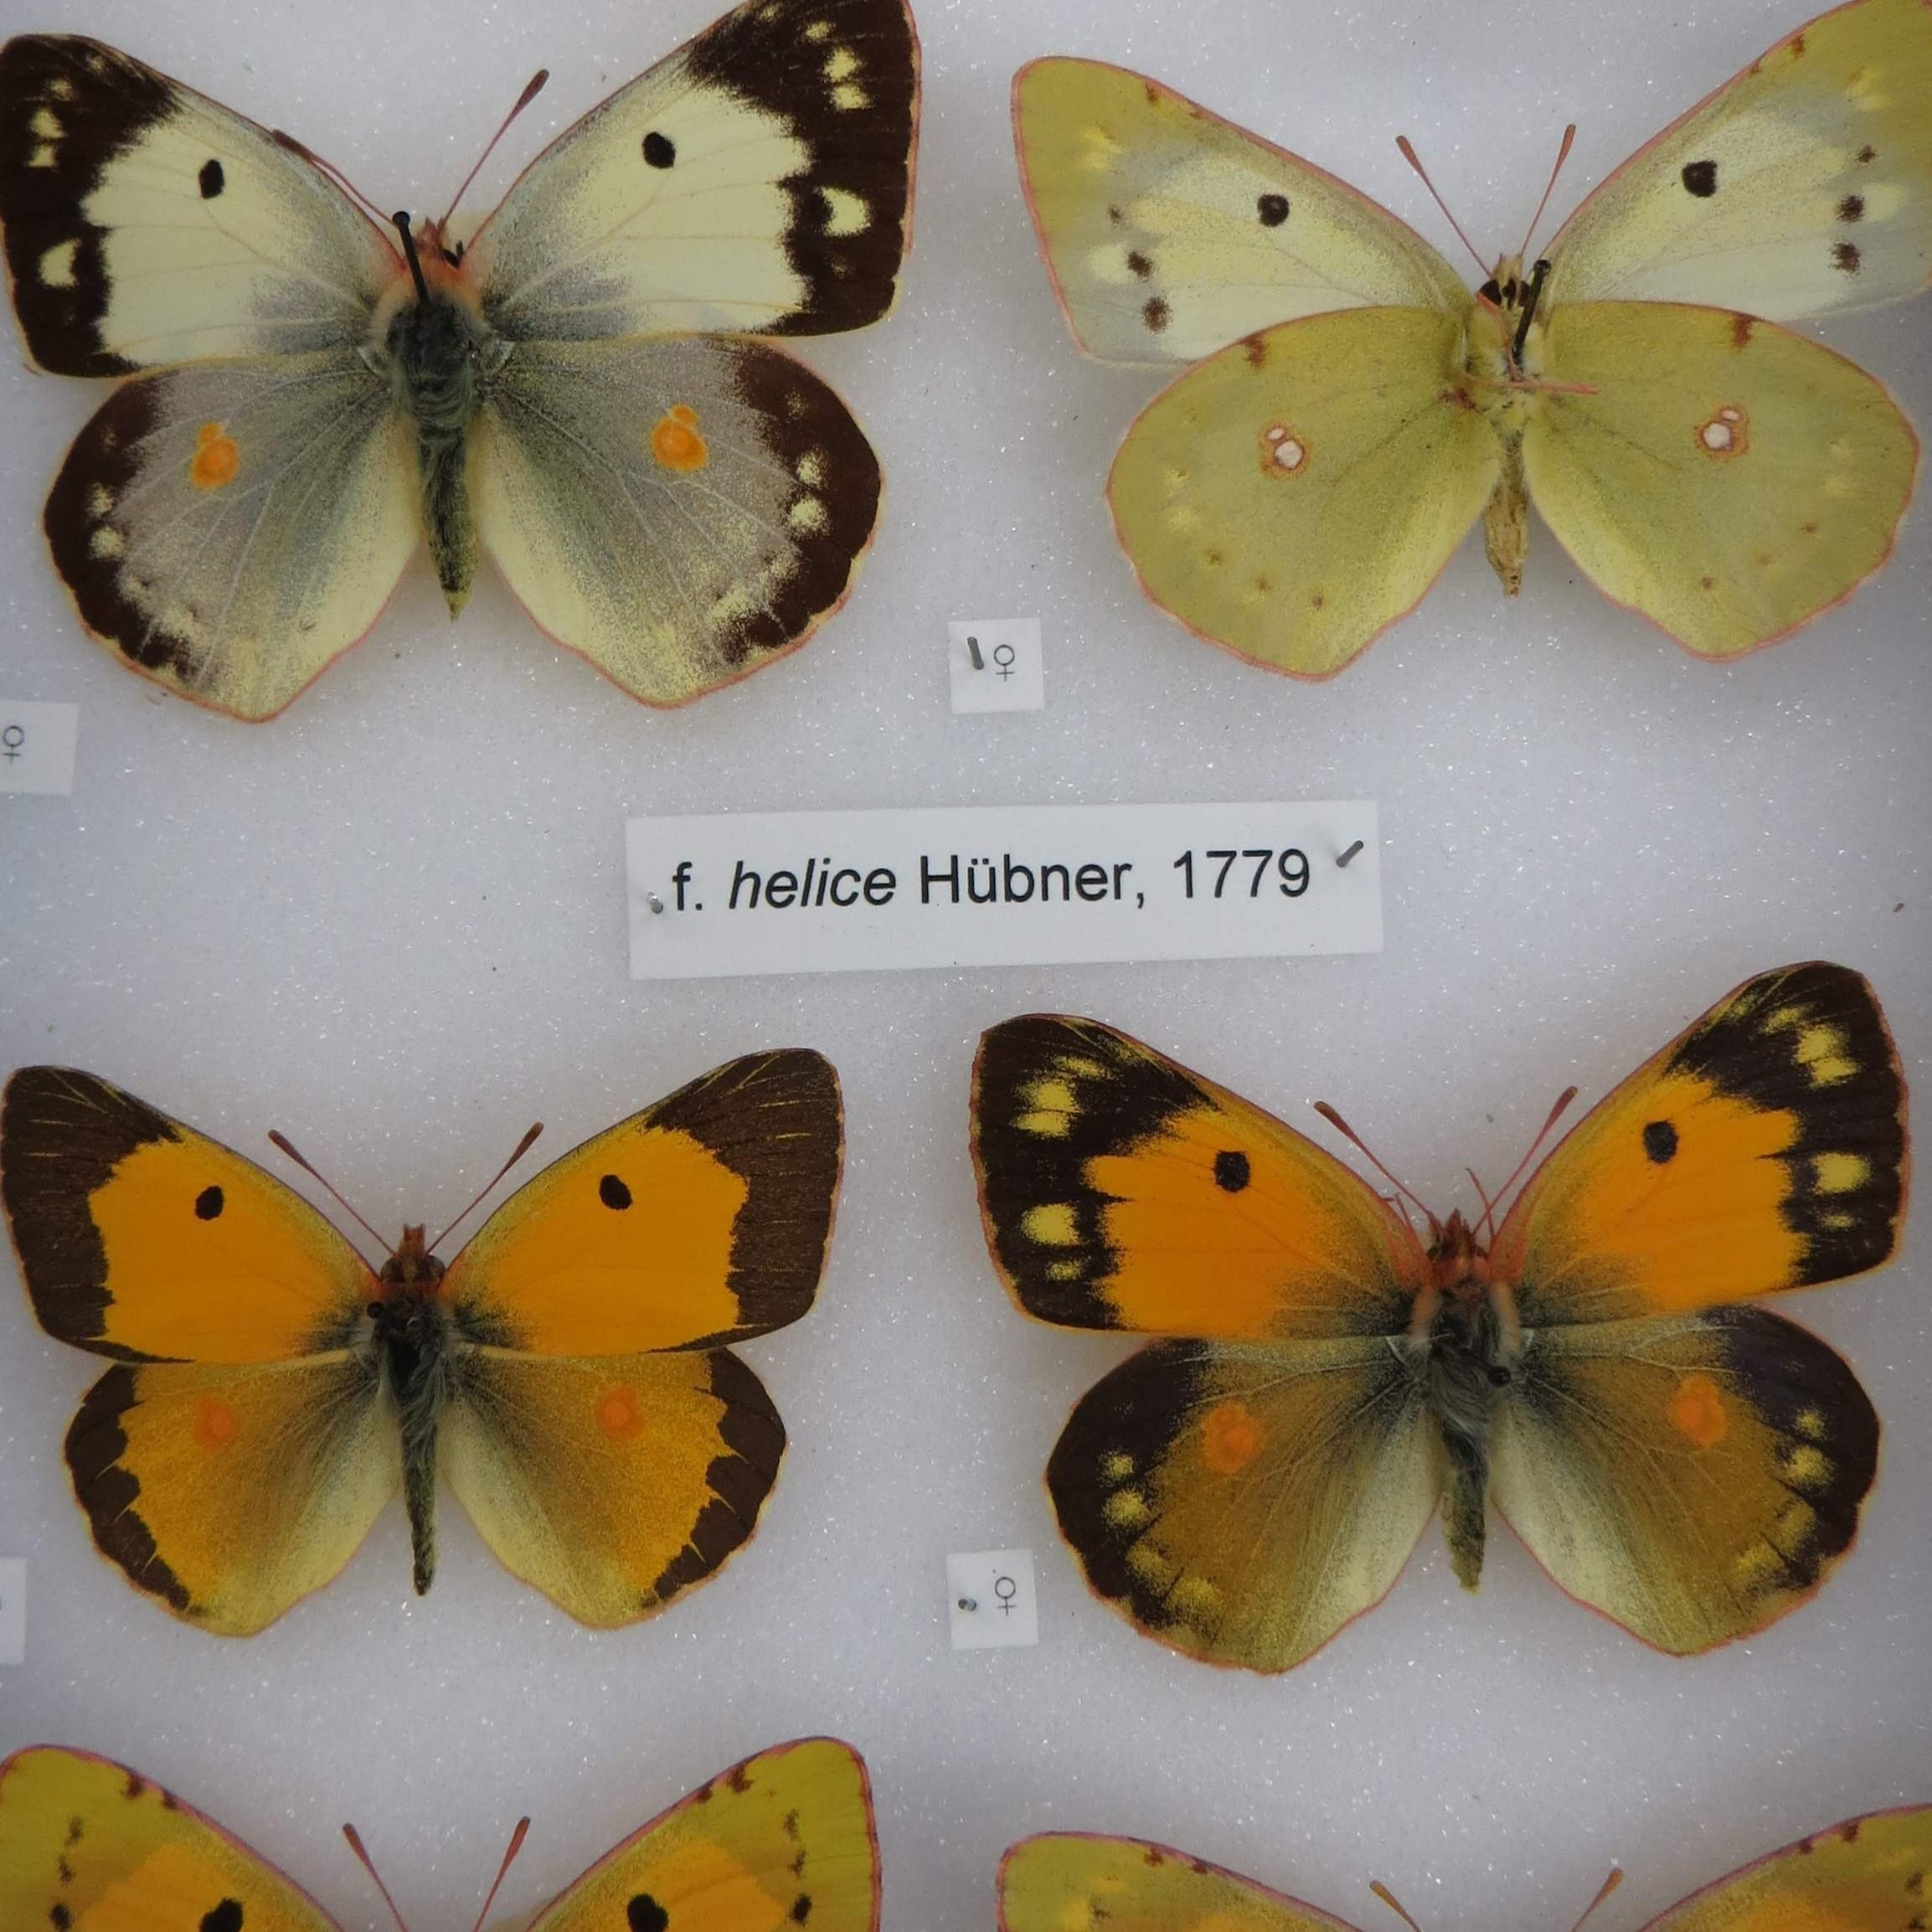 butterfly specimens at the natural history museum